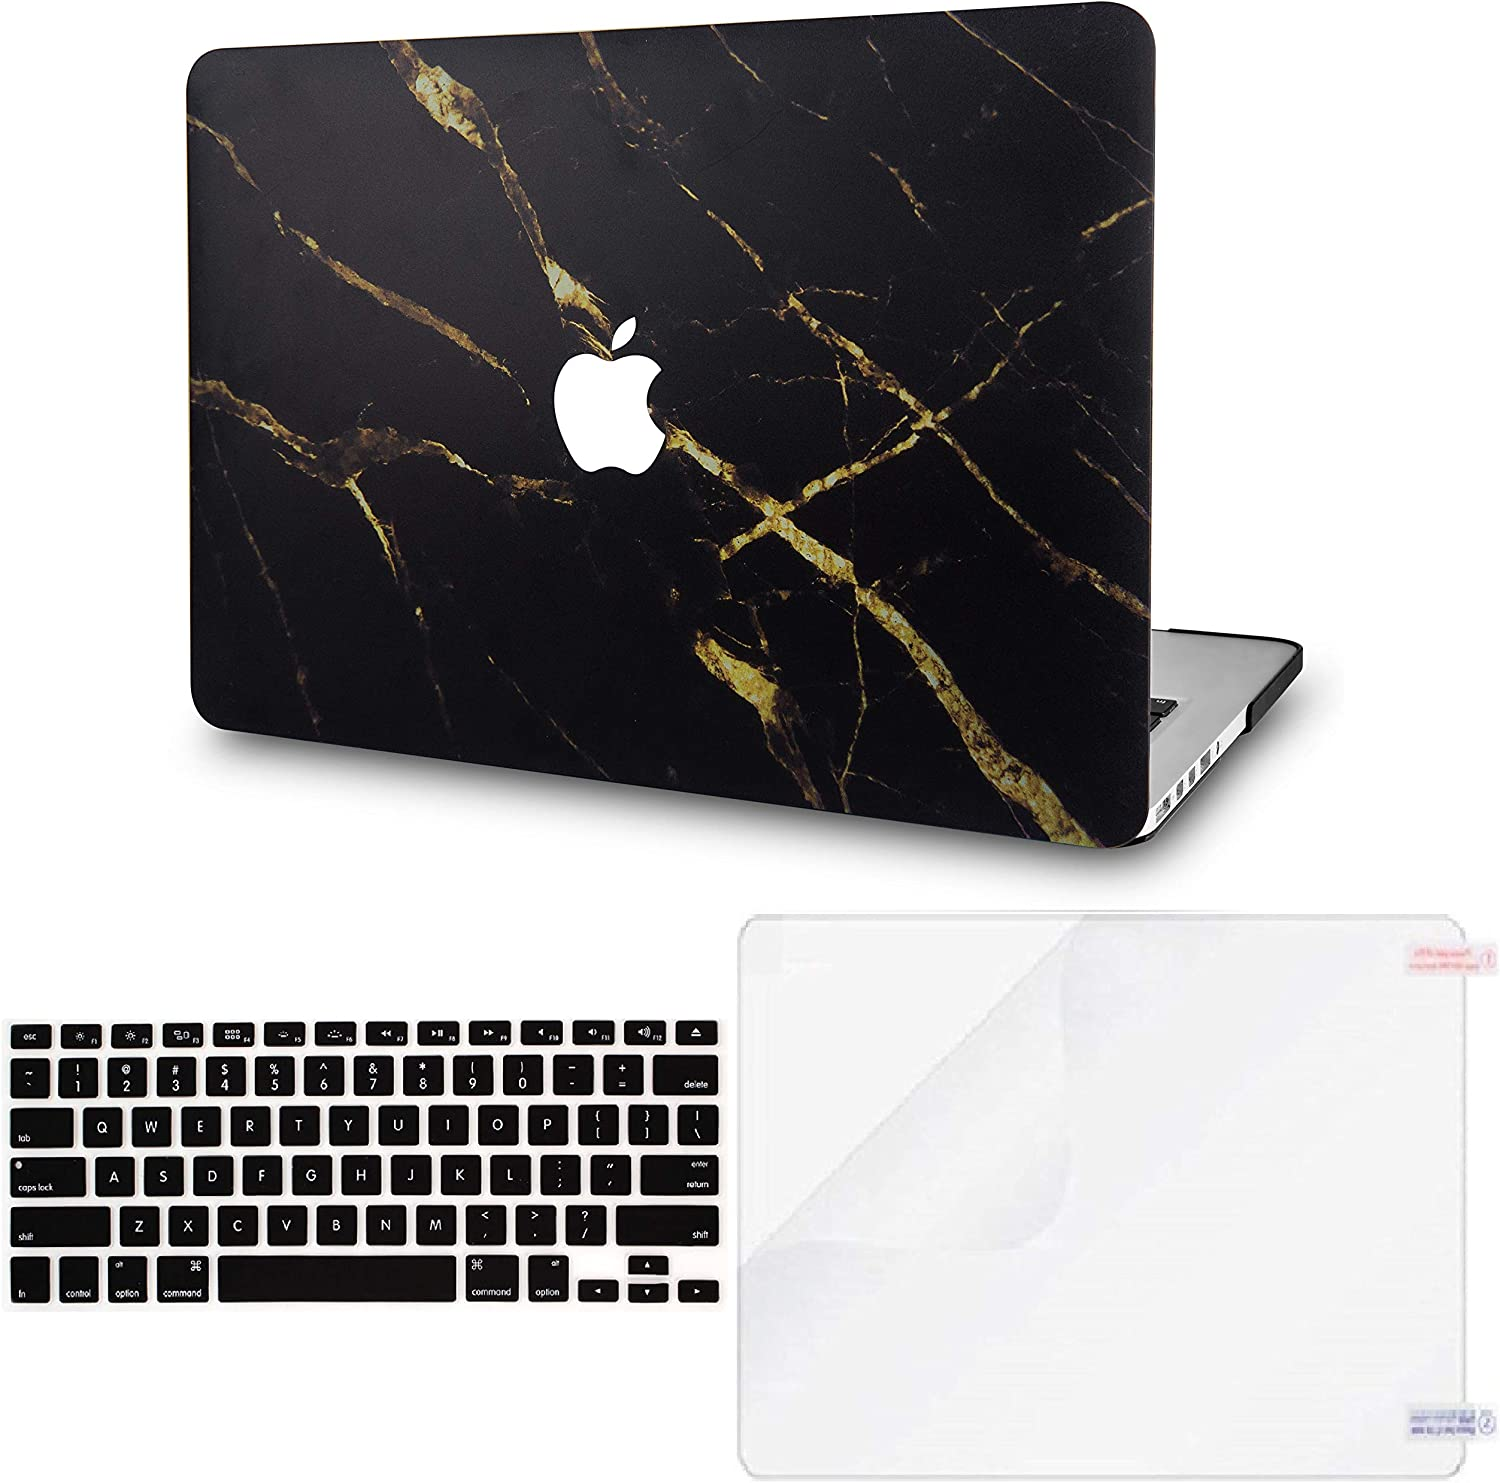 LuvCase 3 in 1 Laptop Case for MacBook Pro 16 Touch Bar (2020/2019) A2141 Hard Shell Cover, Keyboard Cover & Screen Protector (Black Gold Marble)